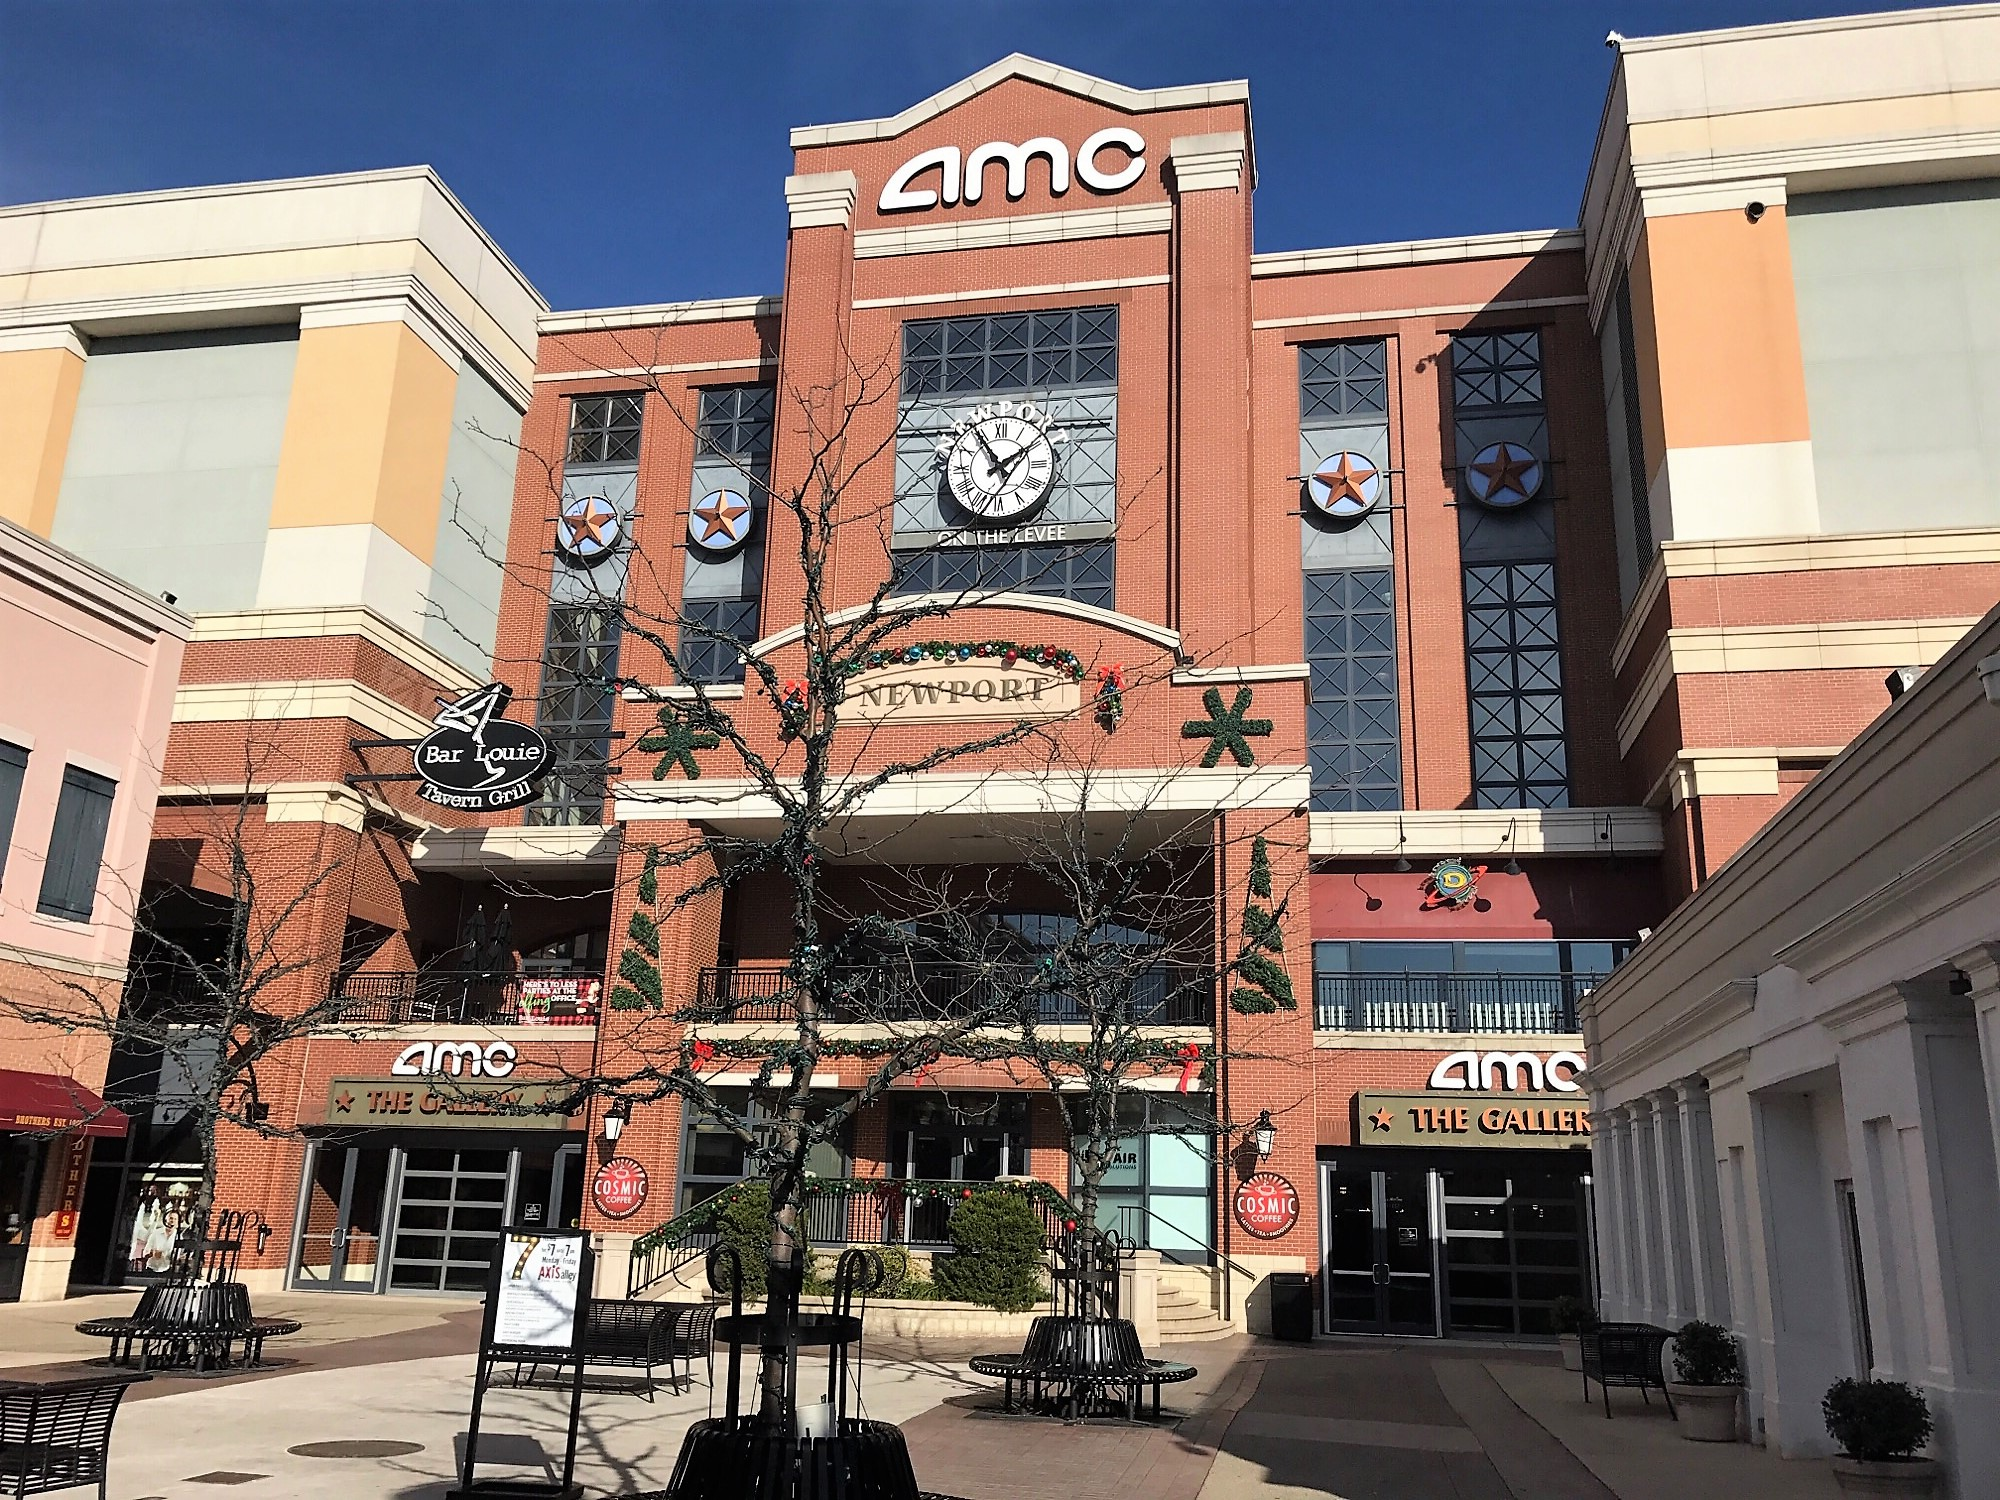 Amc Newport On The Levee 20 May Look Same Outside But A Whole New Moviegoing Experience Awaits Inside Photos By Mark Hansel